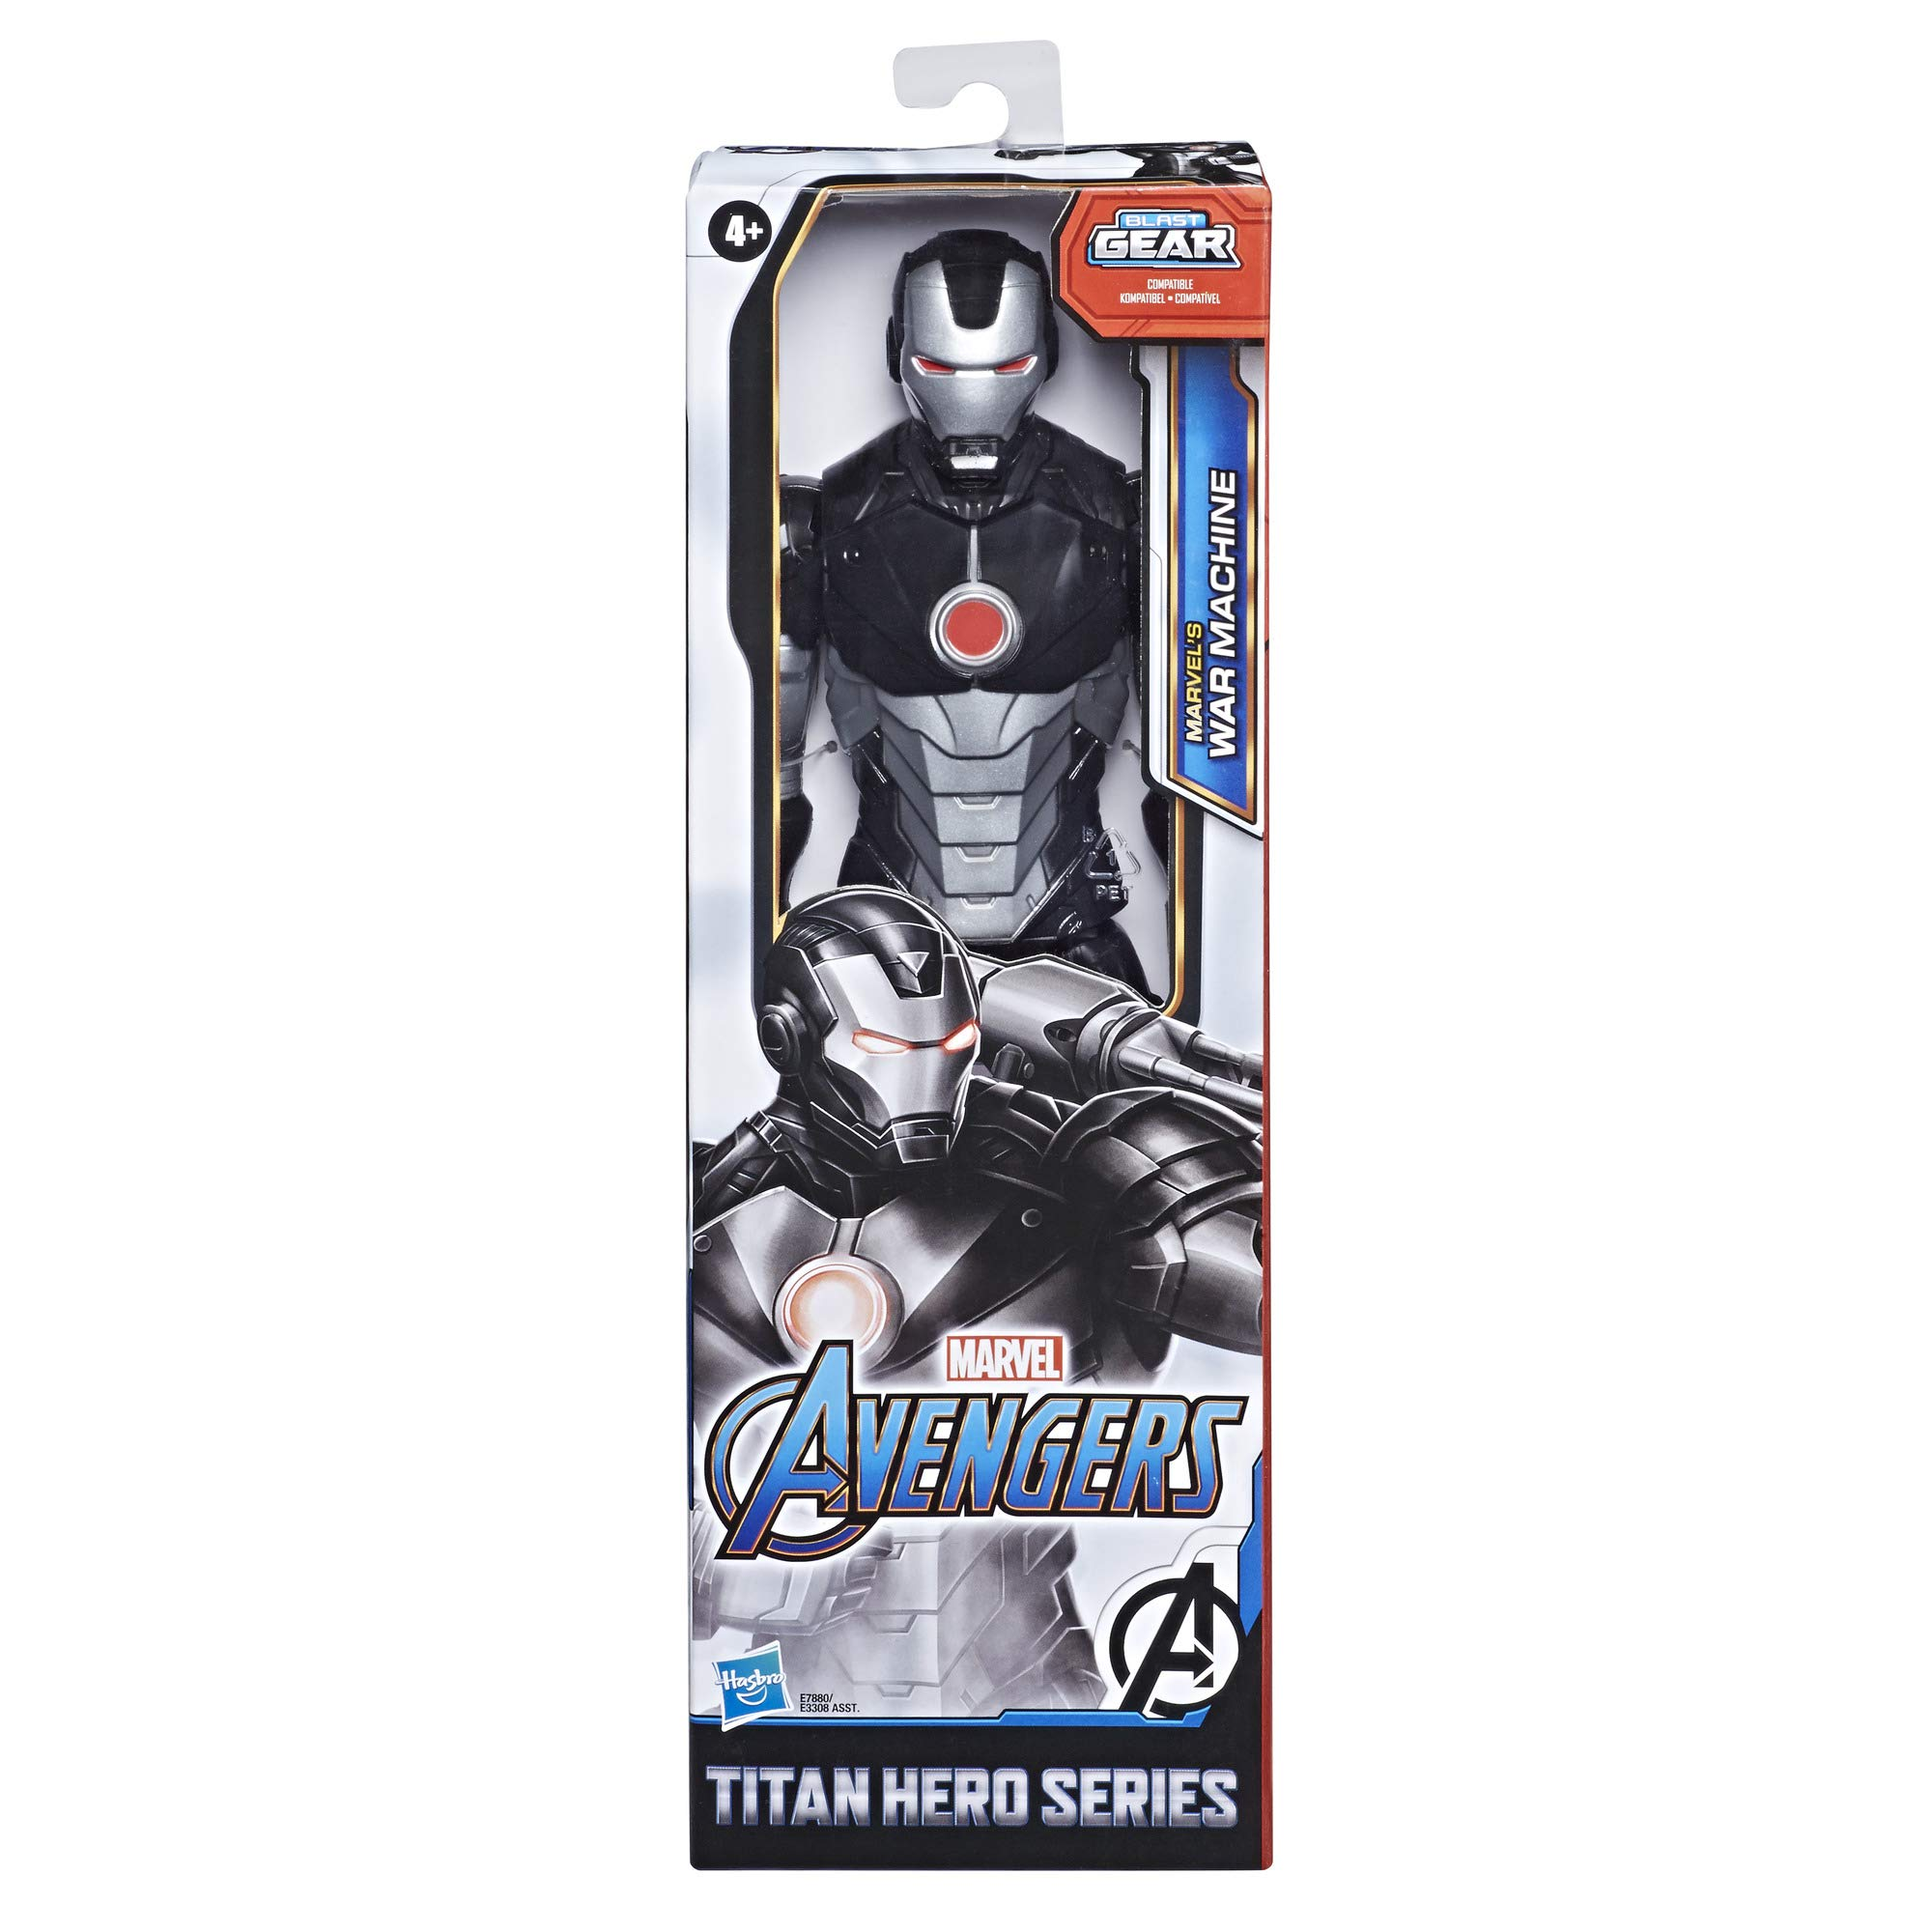 Avengers Marvel Titan Hero Series Blast Gear Marvel's War Machine Action Figure, 12-Inch Toy, Inspired by The Marvel Universe, for Kids Ages 4 and Up